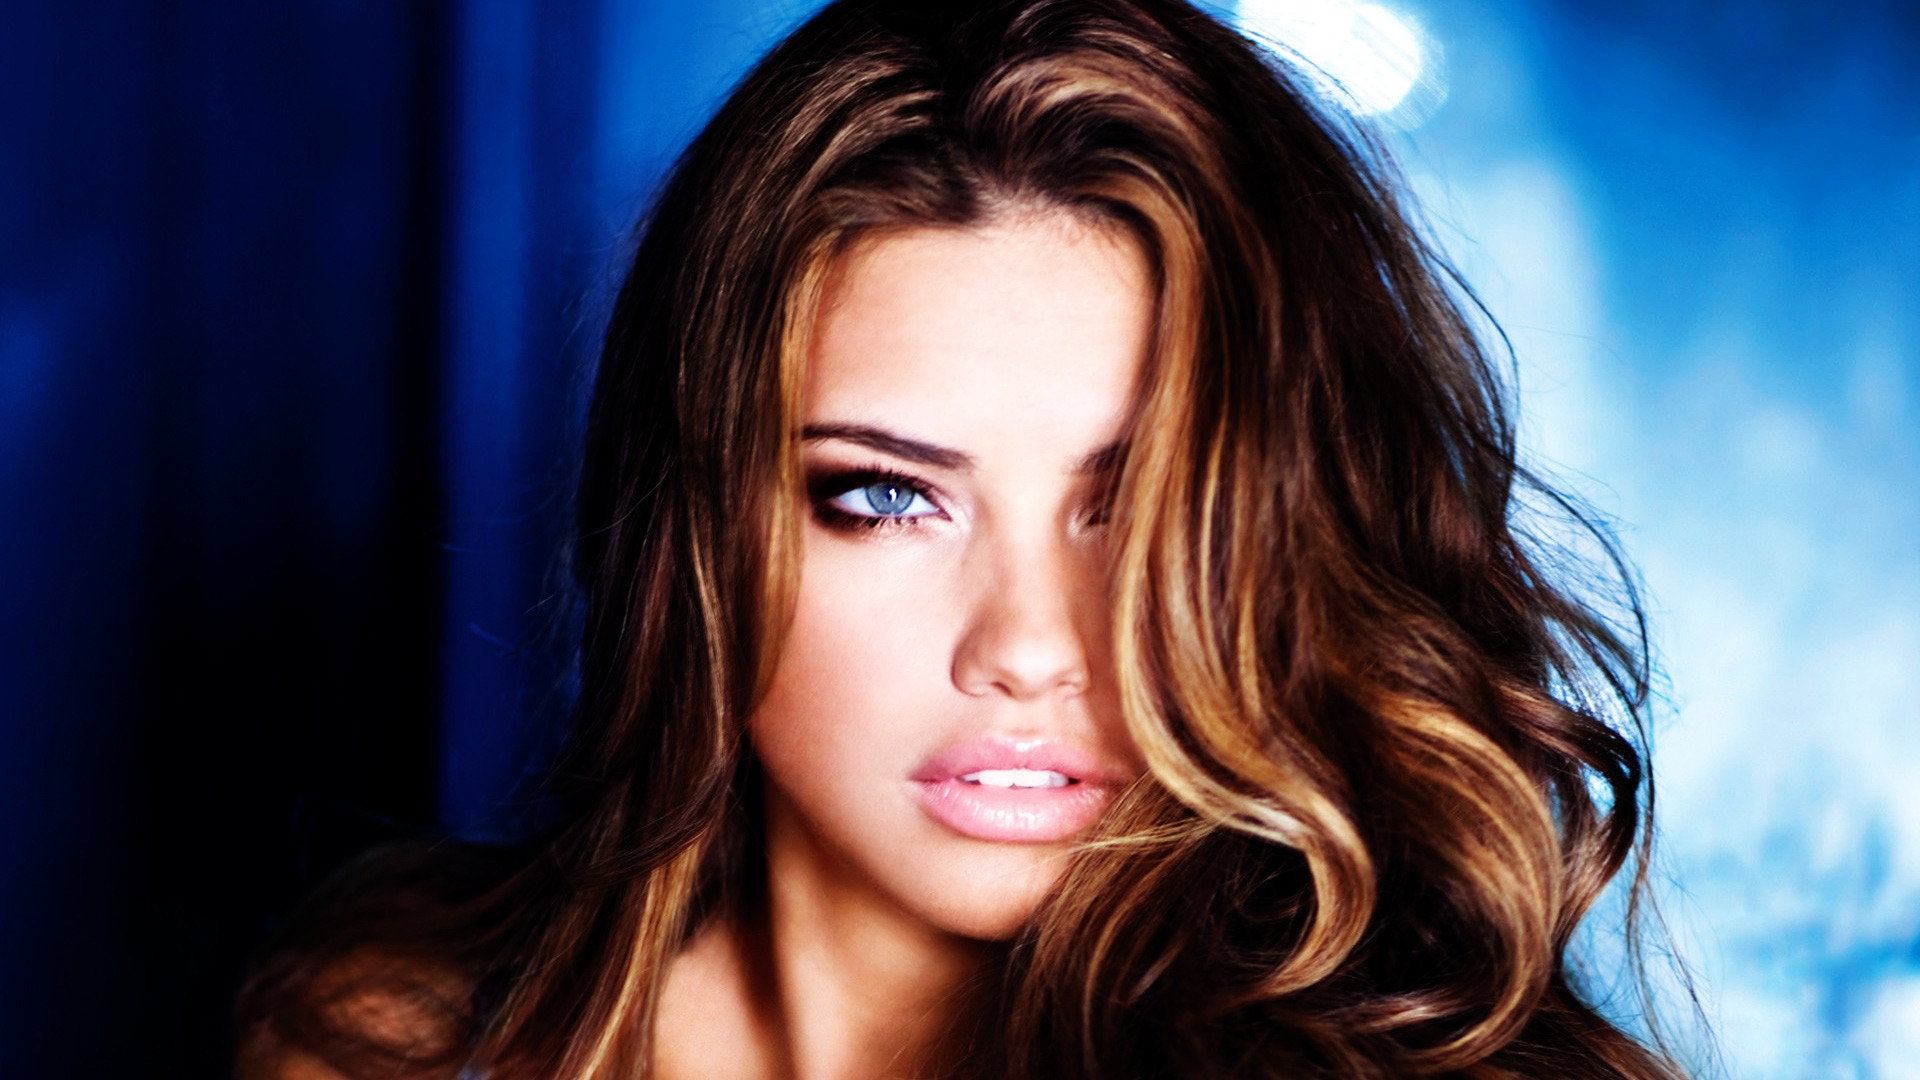 Adriana Lima Style for 1920 x 1080 HDTV 1080p resolution